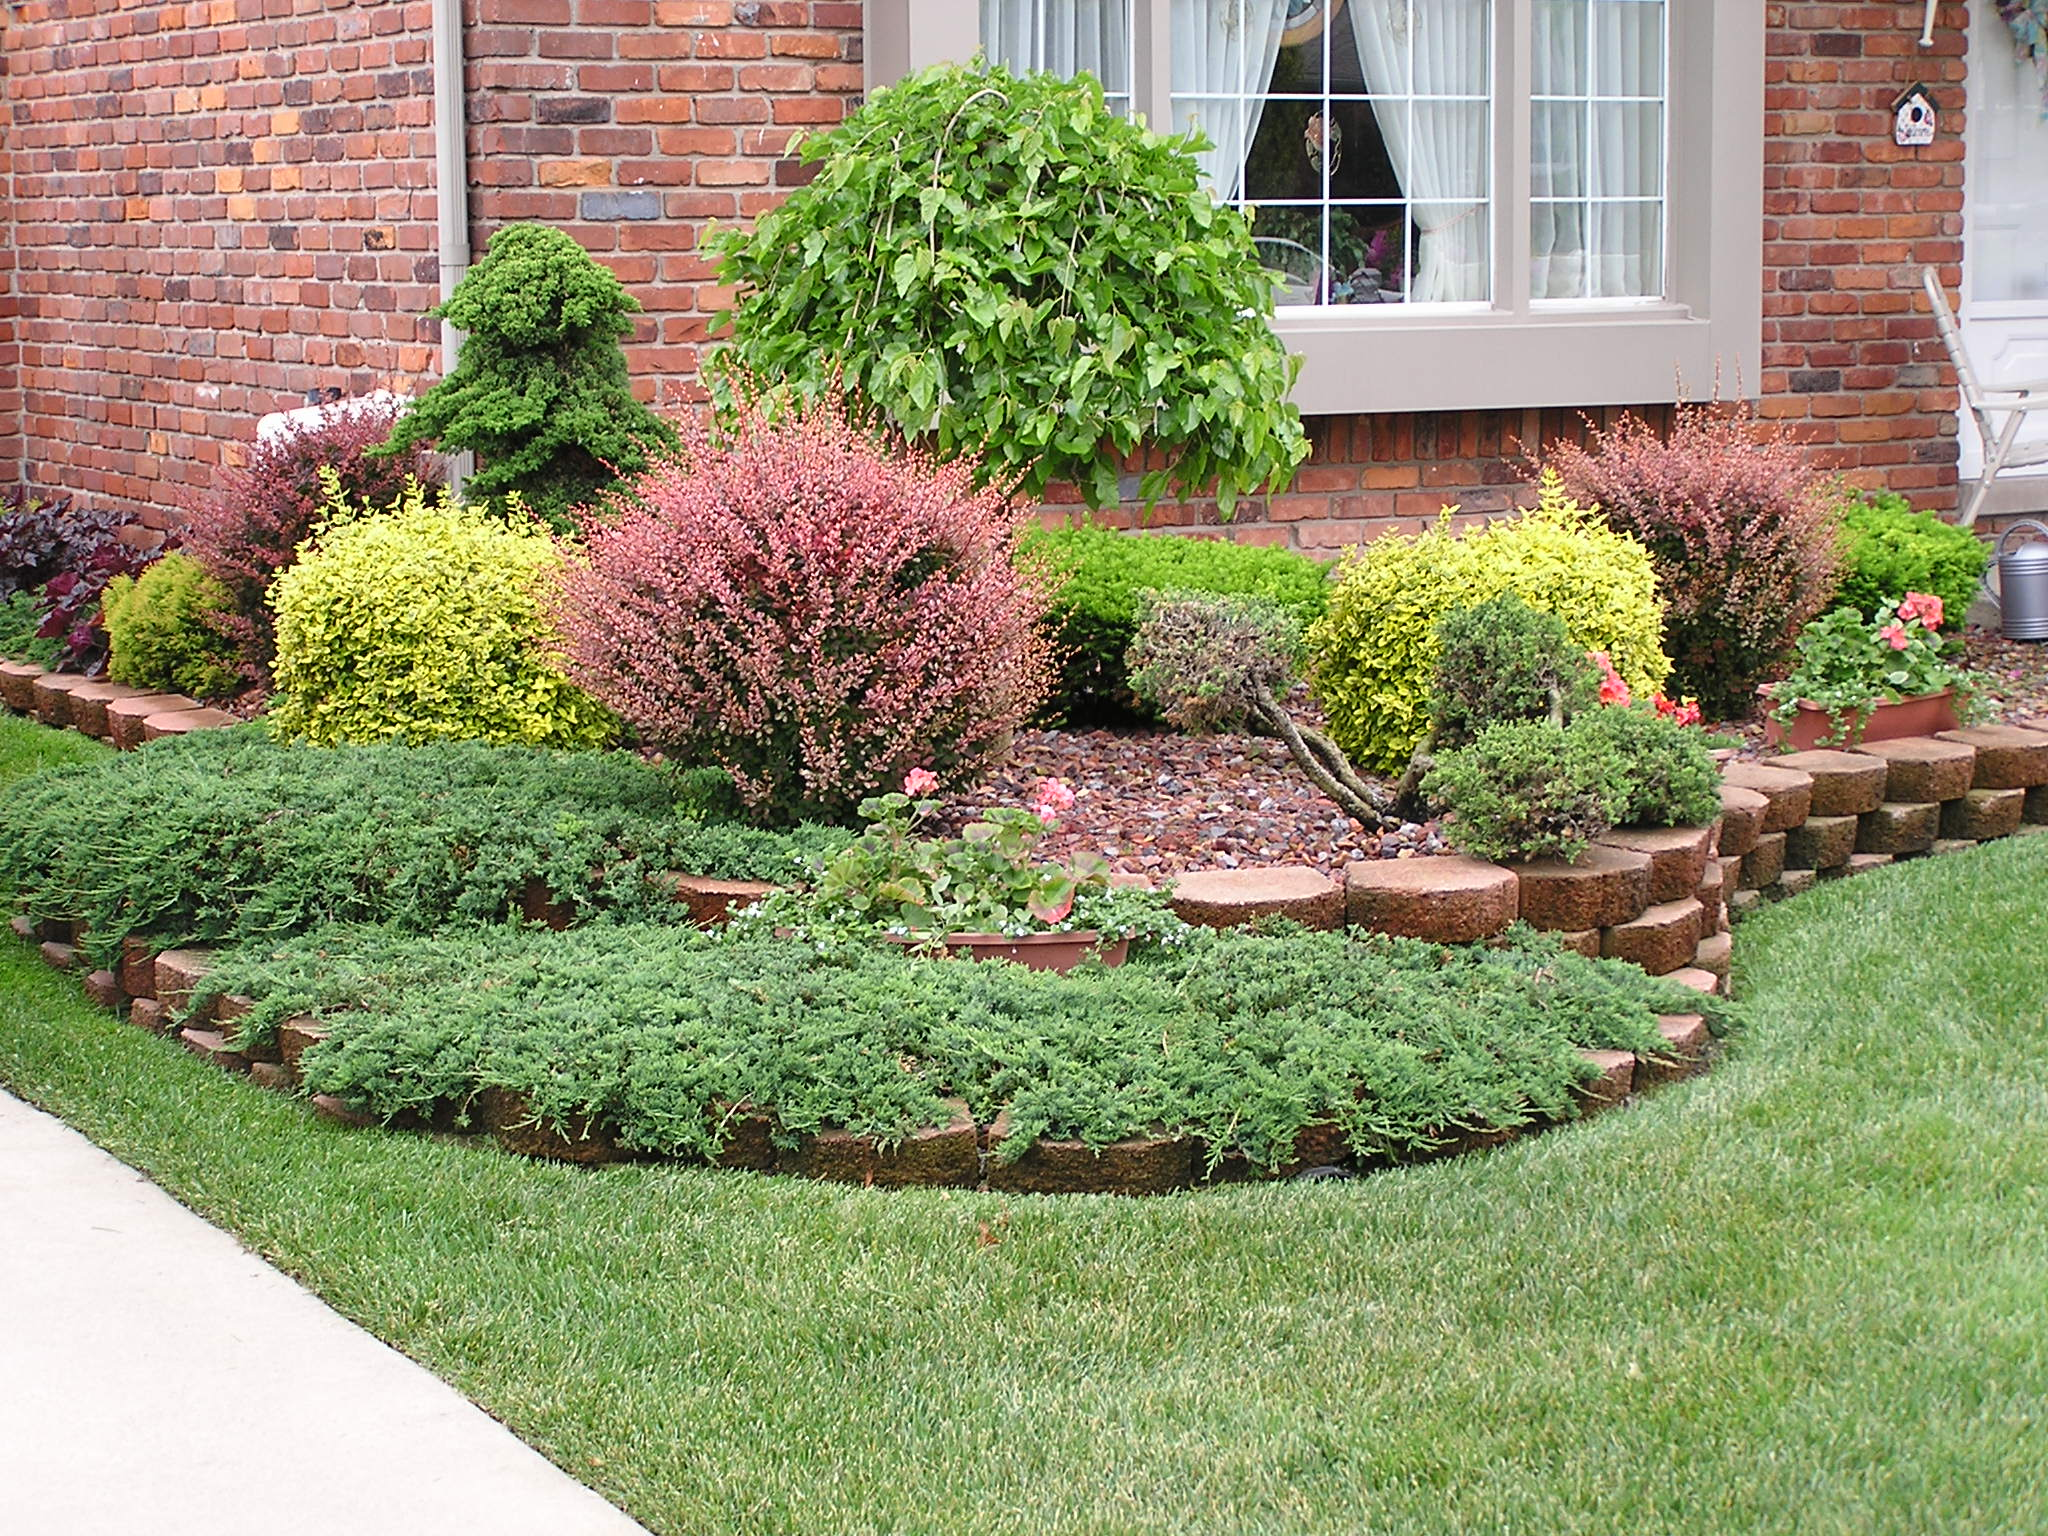 Front yard landscaping ideas for Tree landscaping ideas